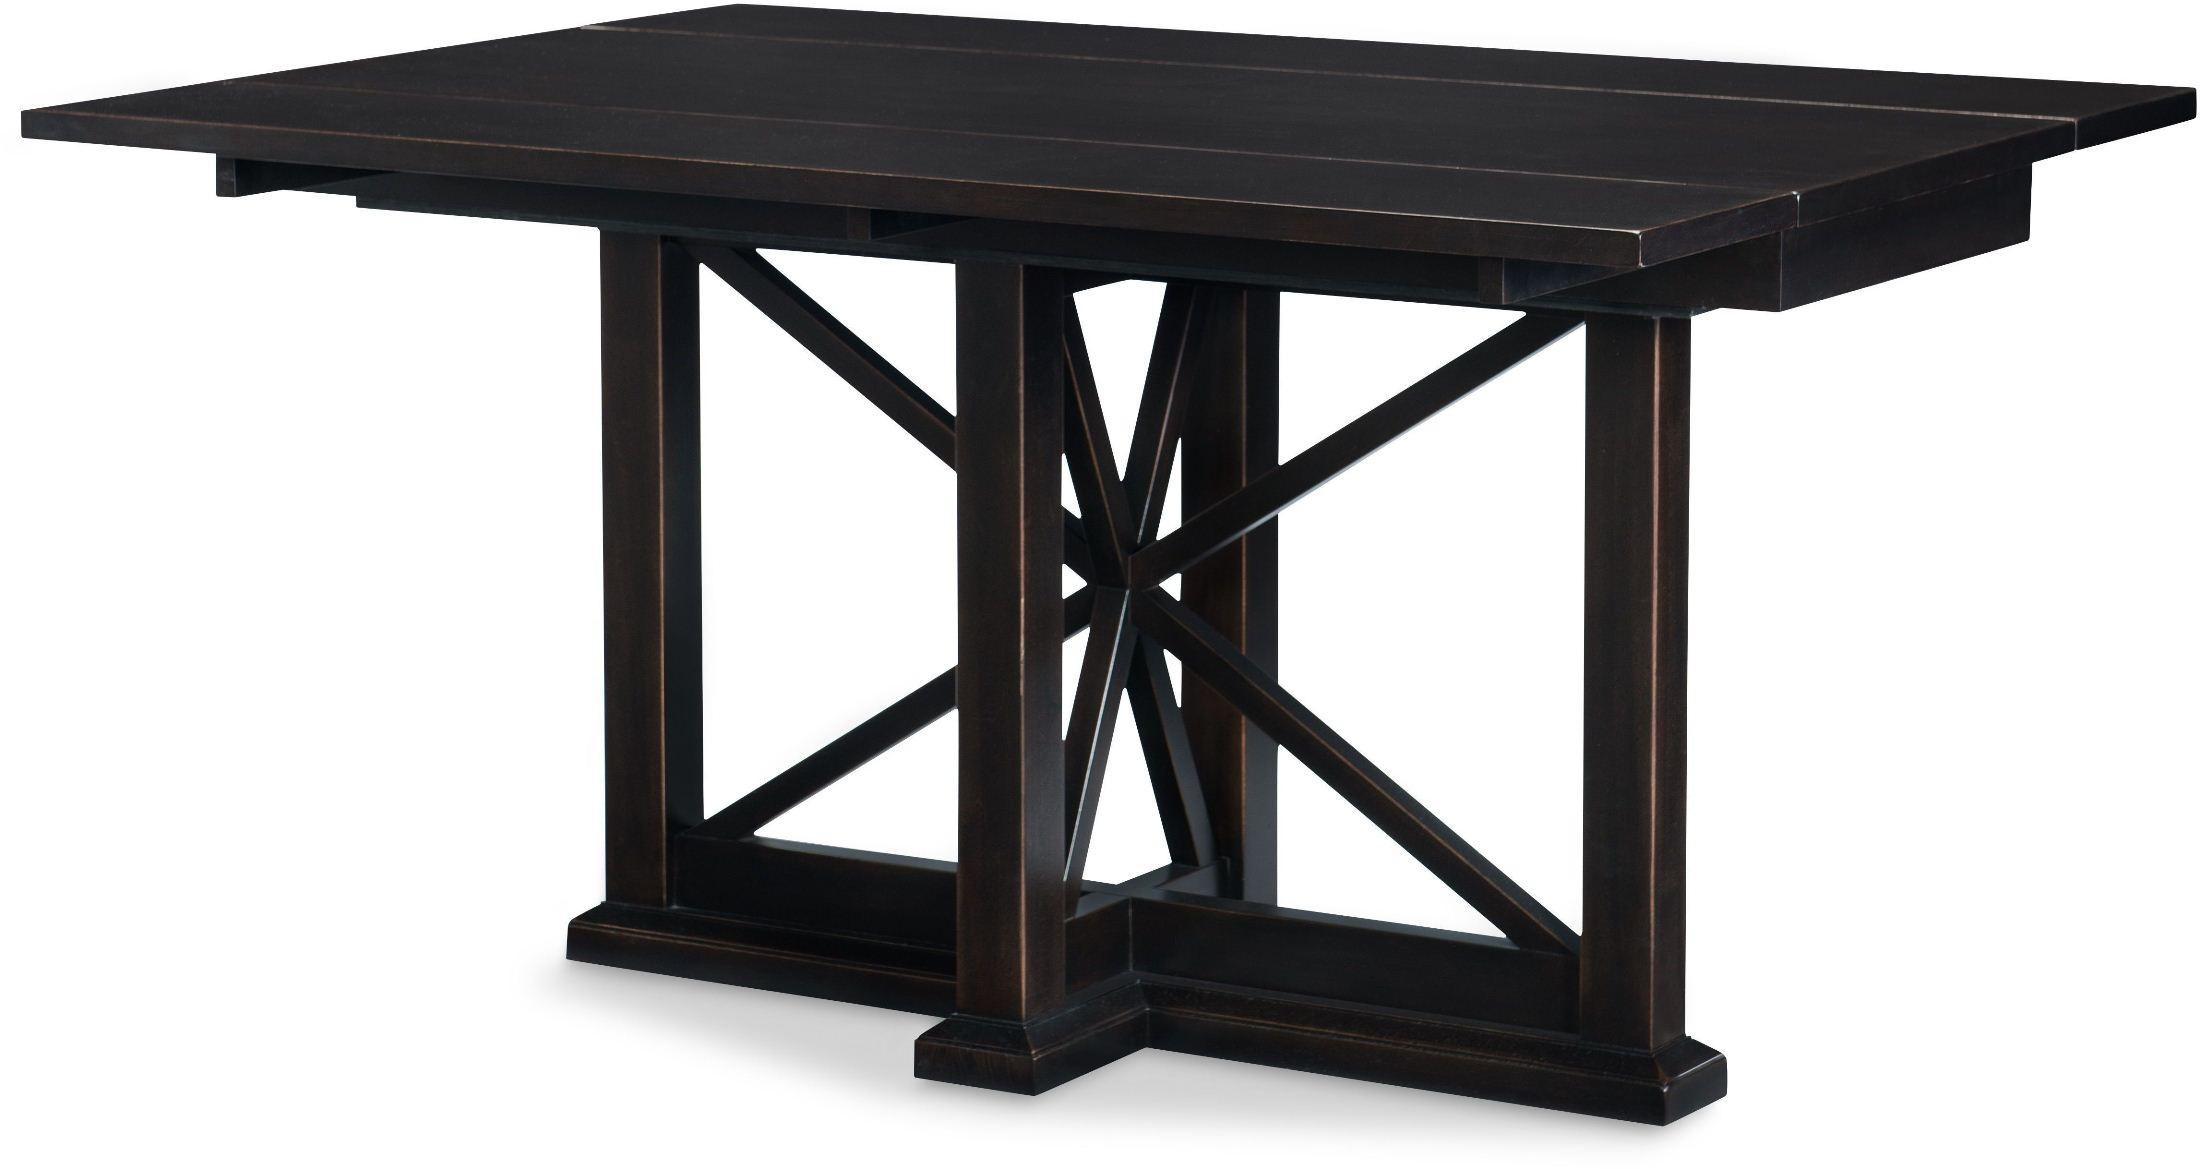 Everyday sea salt drop leaf console extendable dining table from racheal ray - Console table extensible ...